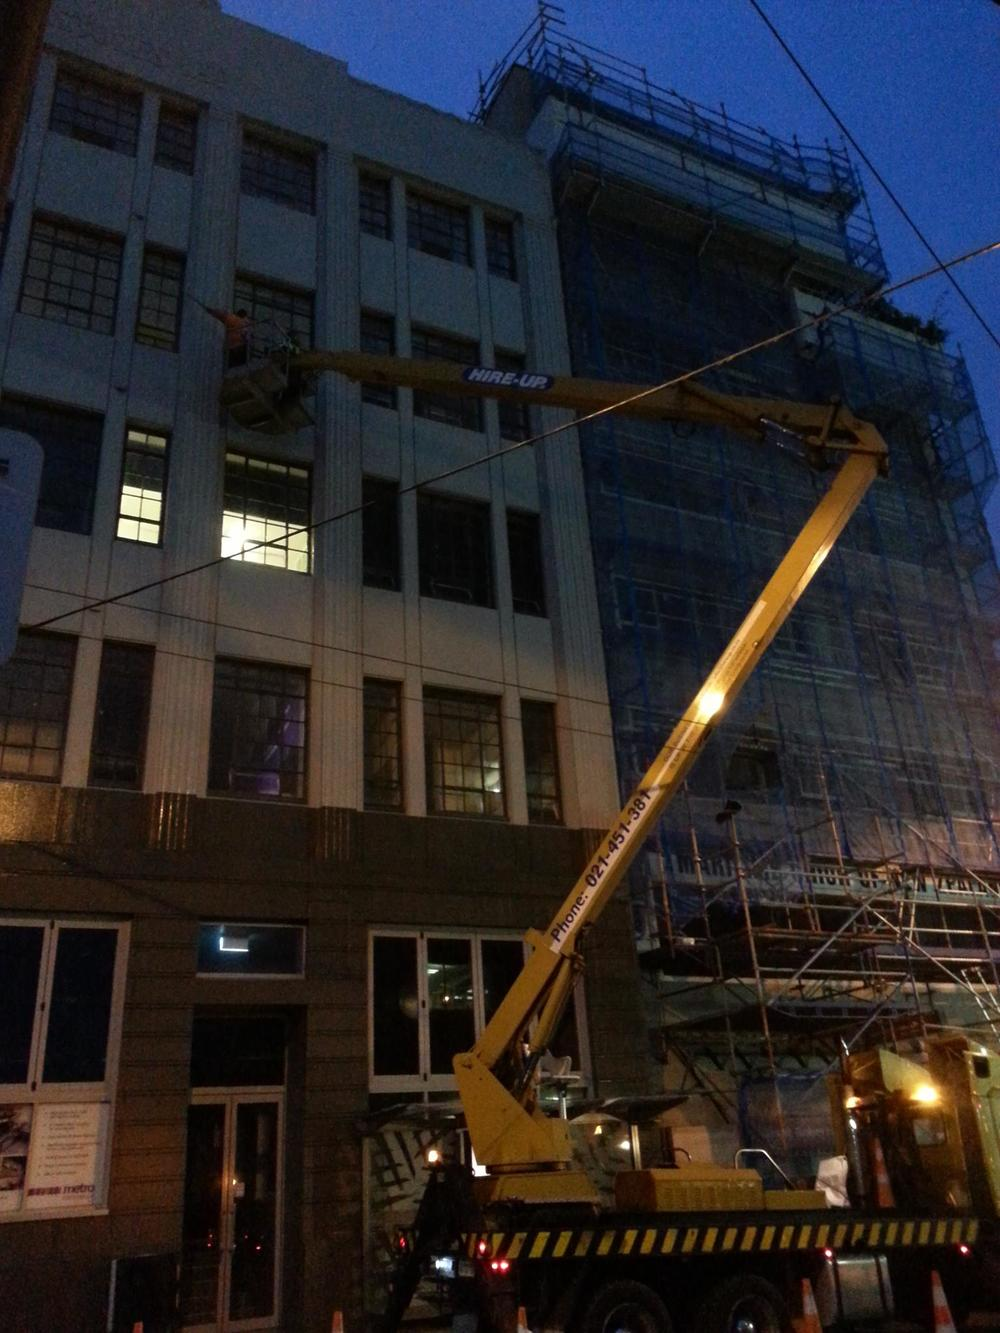 The building wash was started at 3am because they were not allowed to disrupt the traffic on Willis St.